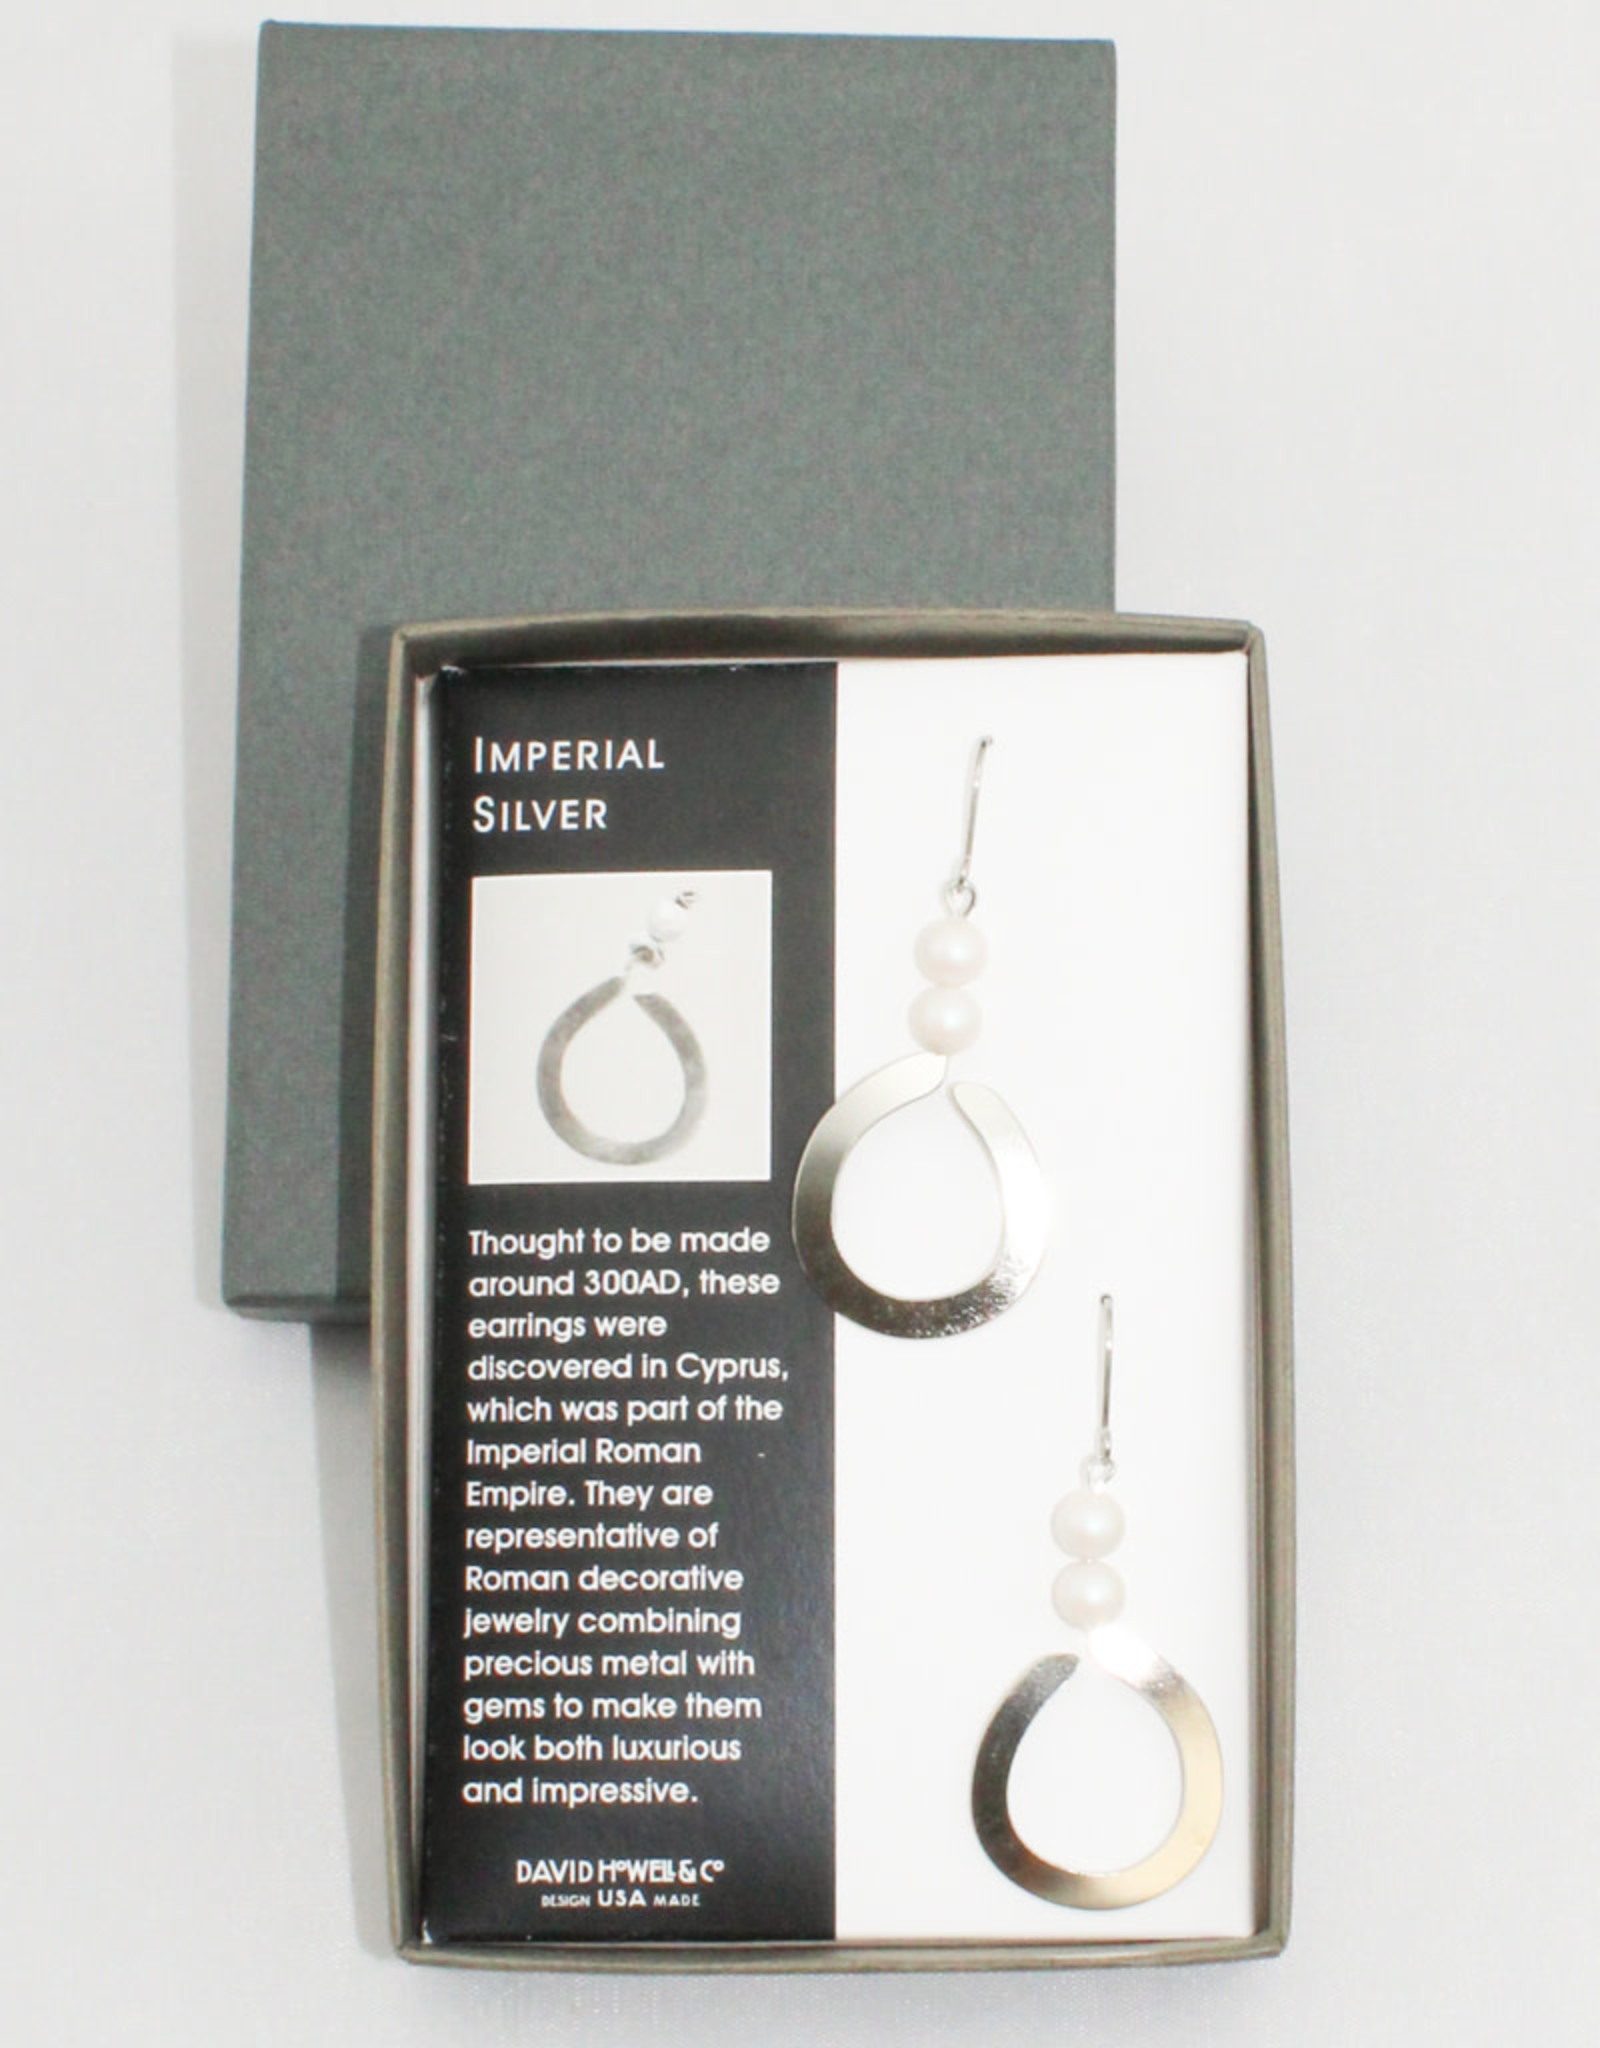 David Howell & Company Imperial Silver Earrings